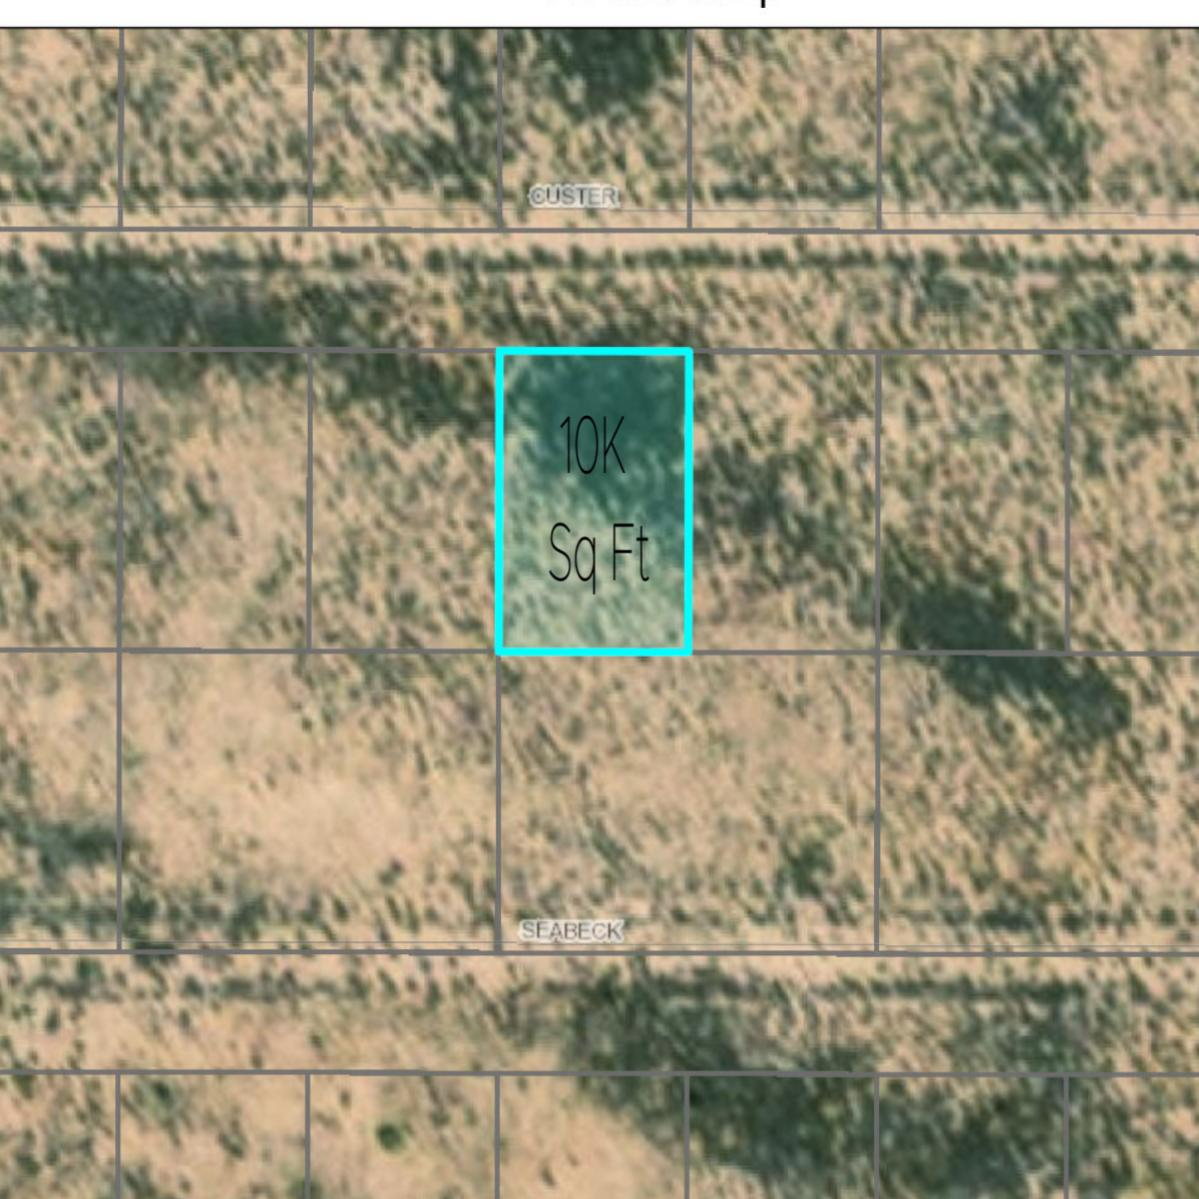 0 Custer, Horizon City, Texas 79928, ,Land,For sale,Custer,839439